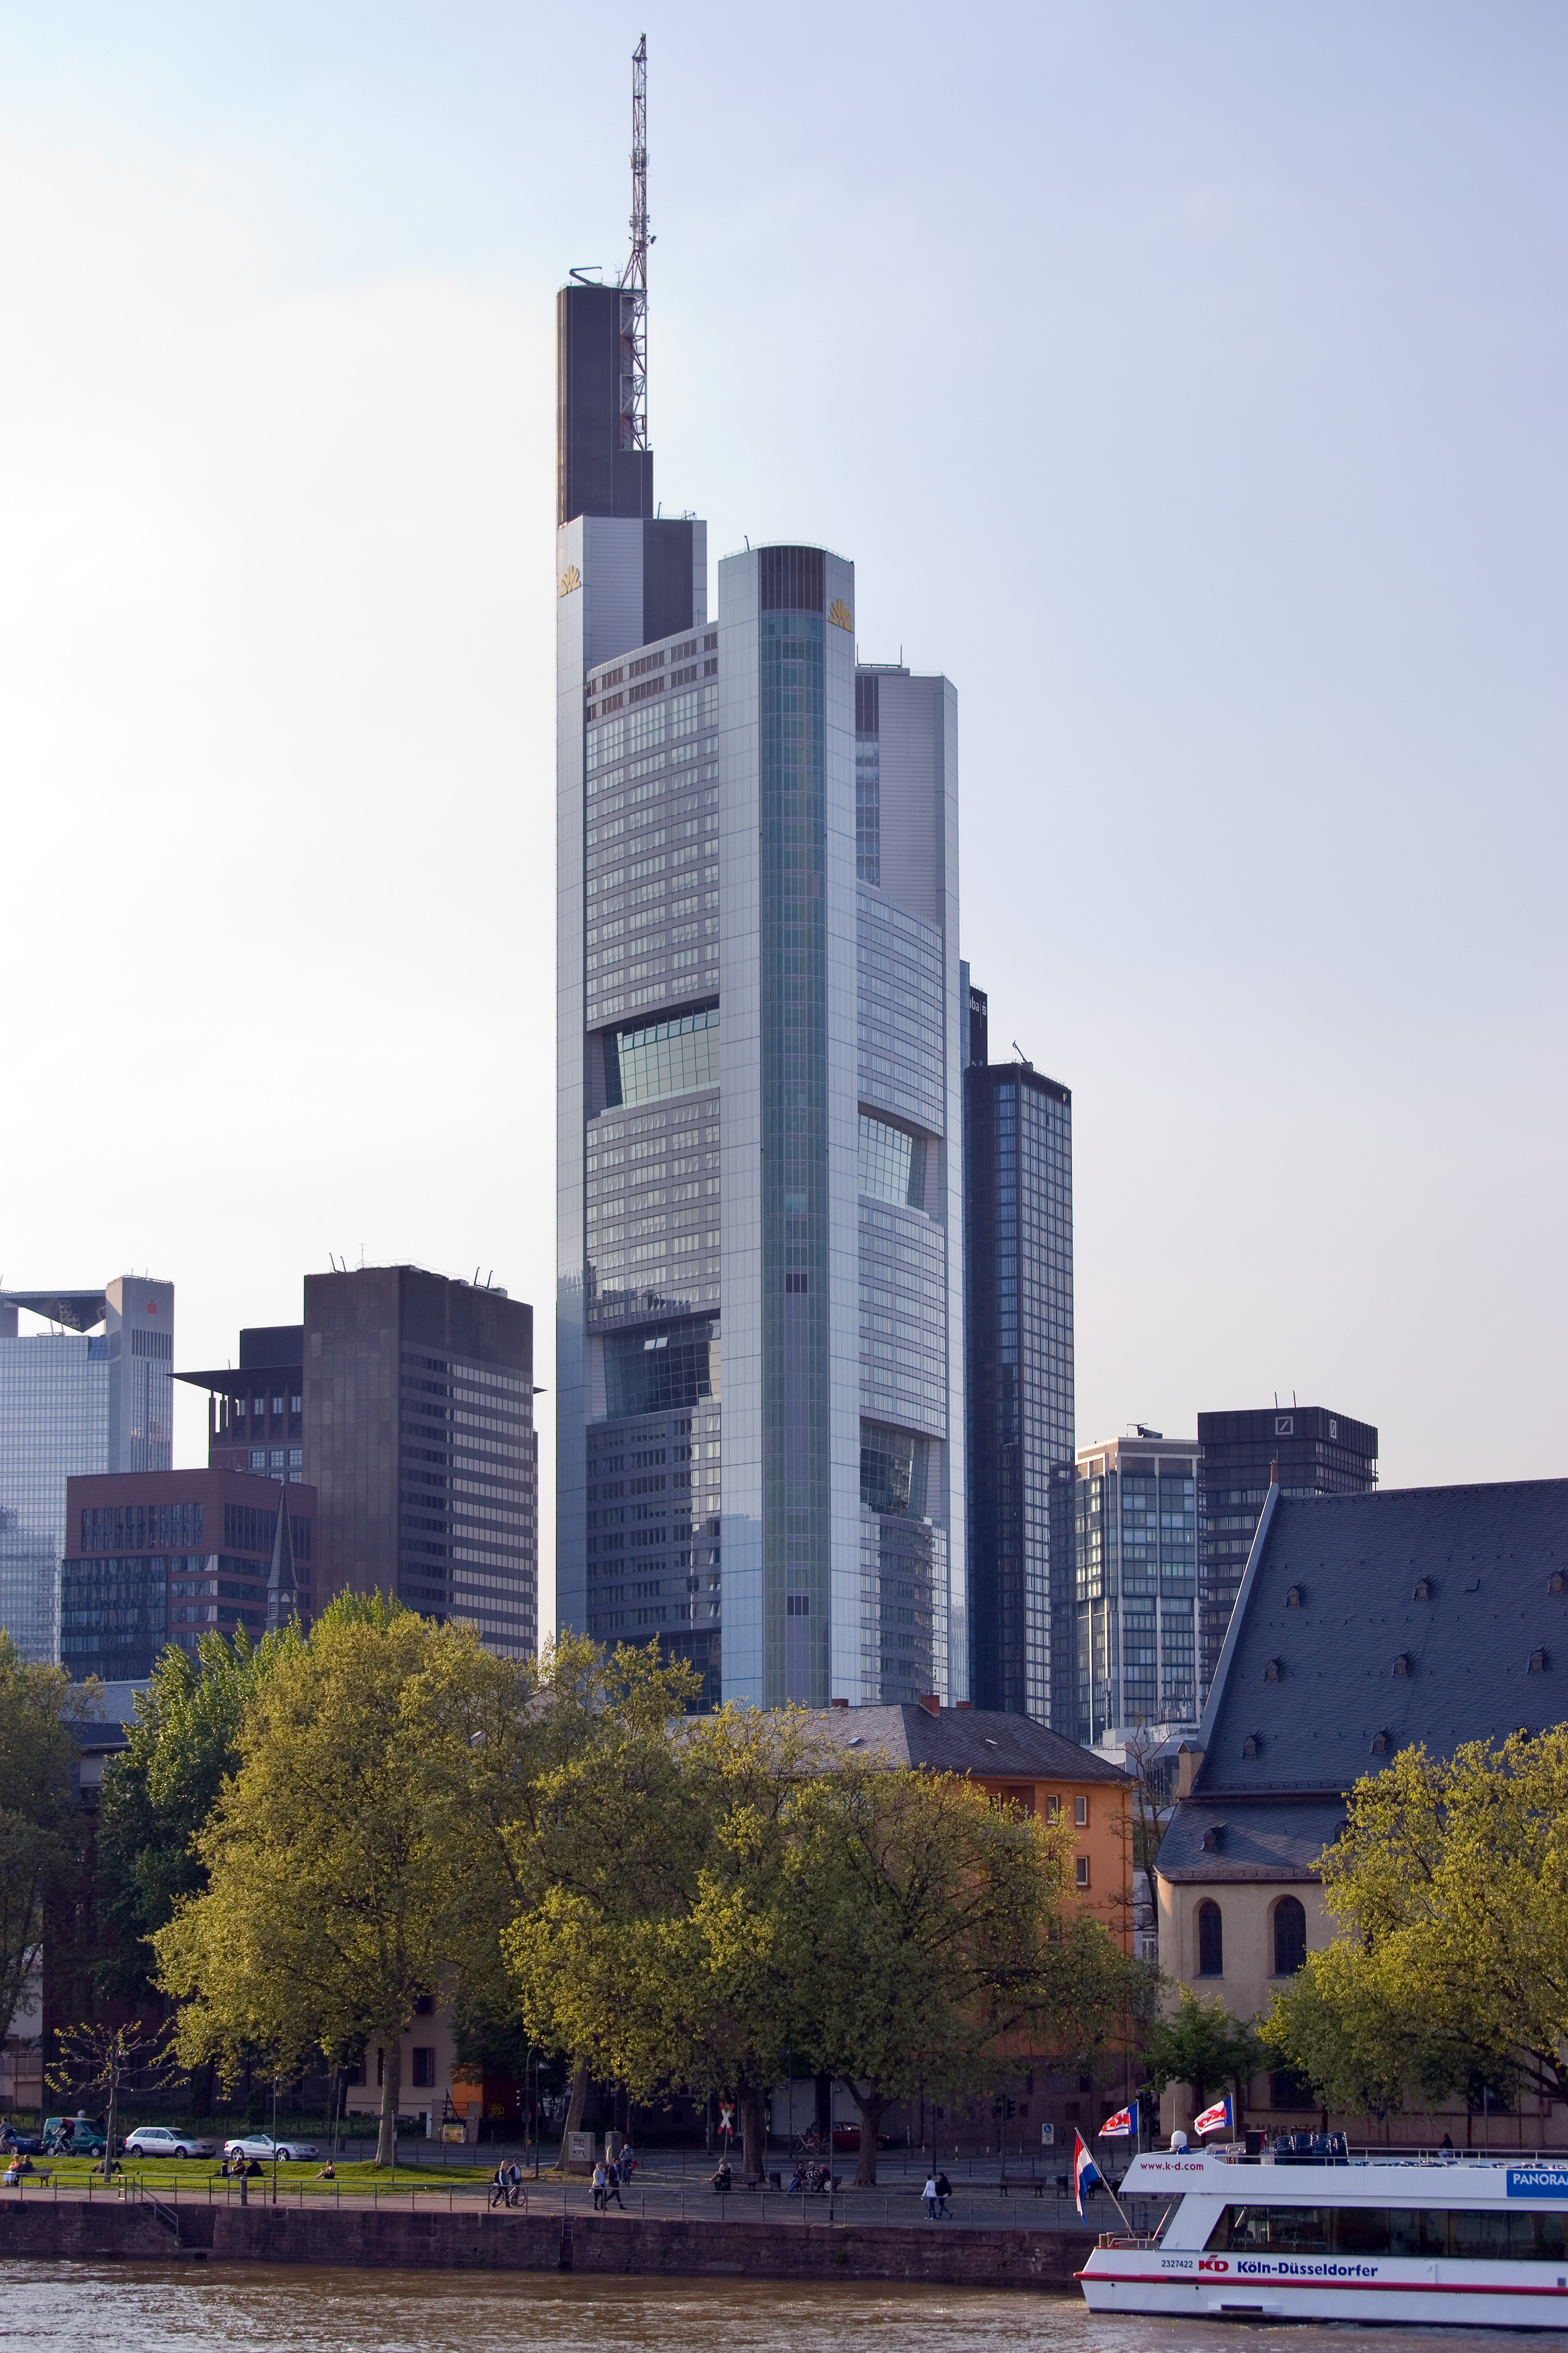 Frankfurt_Am_Main-Commerzbank_Tower-Ansi